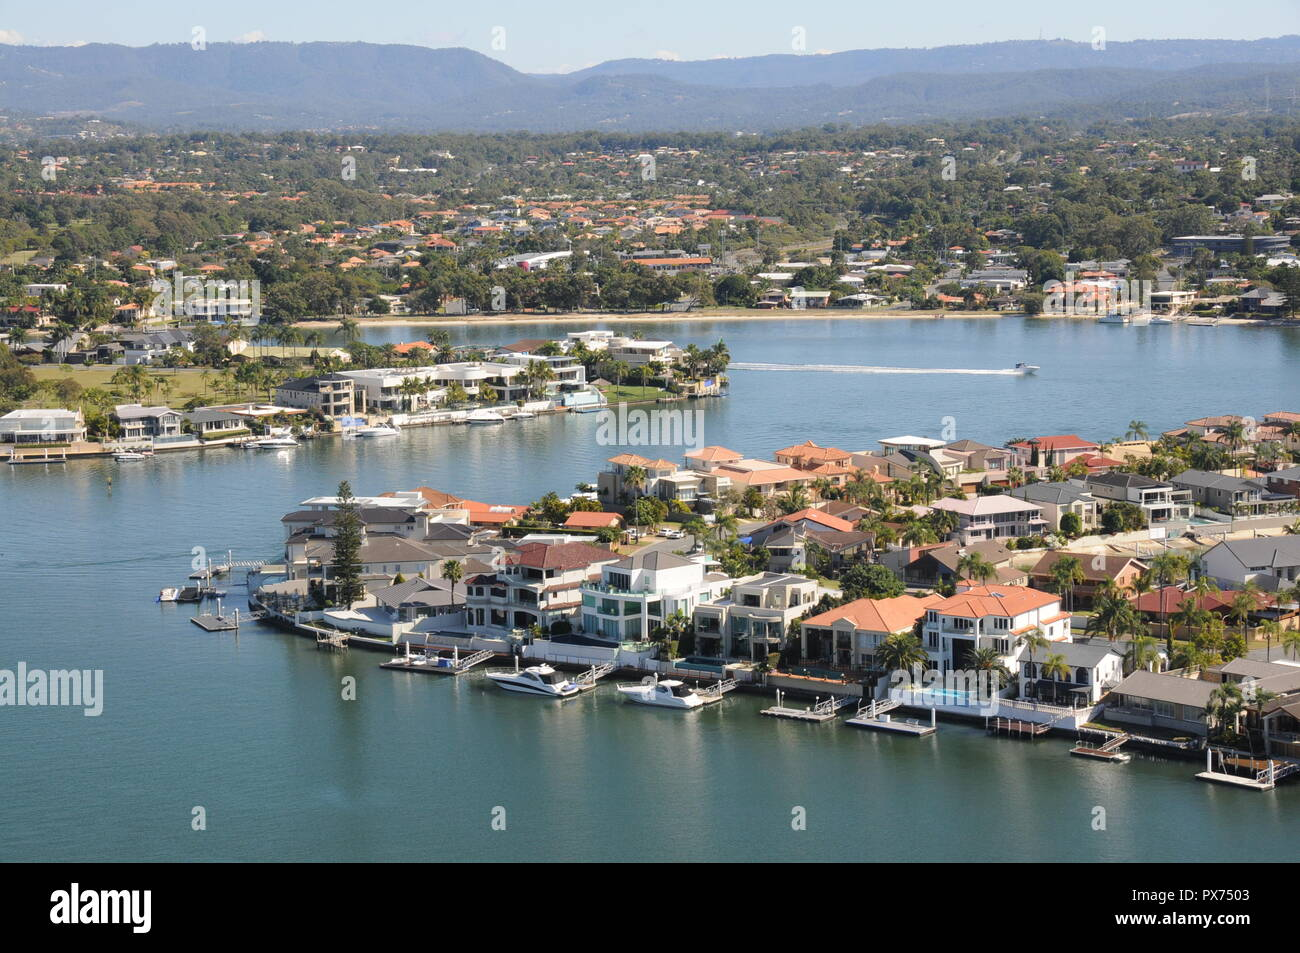 Bright and busy water haven (Brisbane) - Stock Image